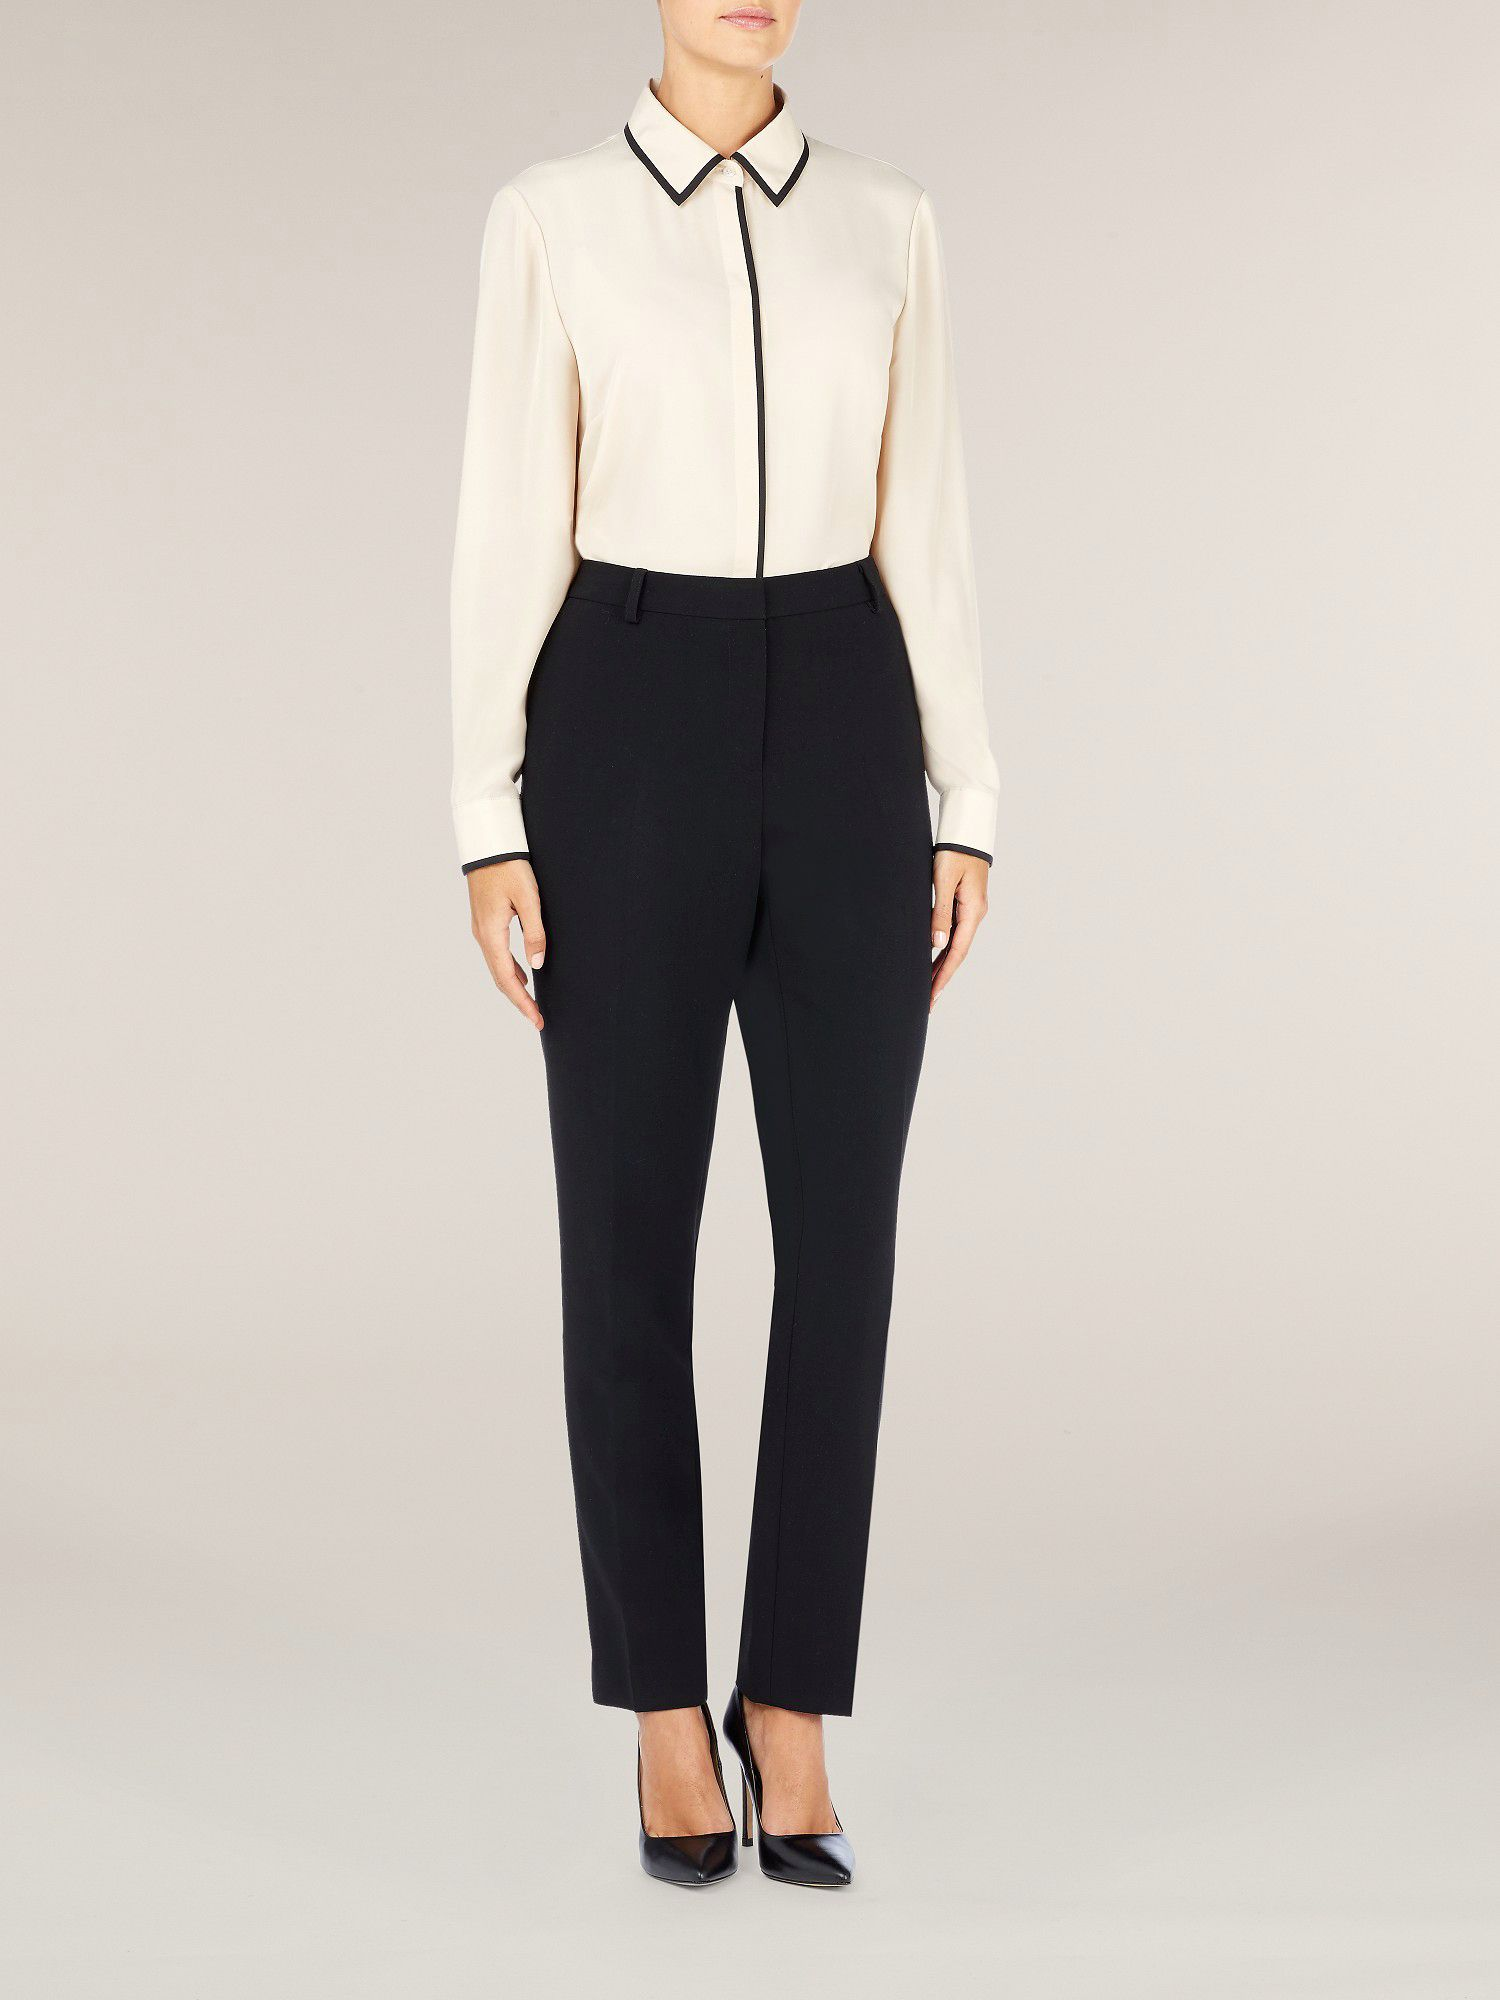 Champagne contrast blouse